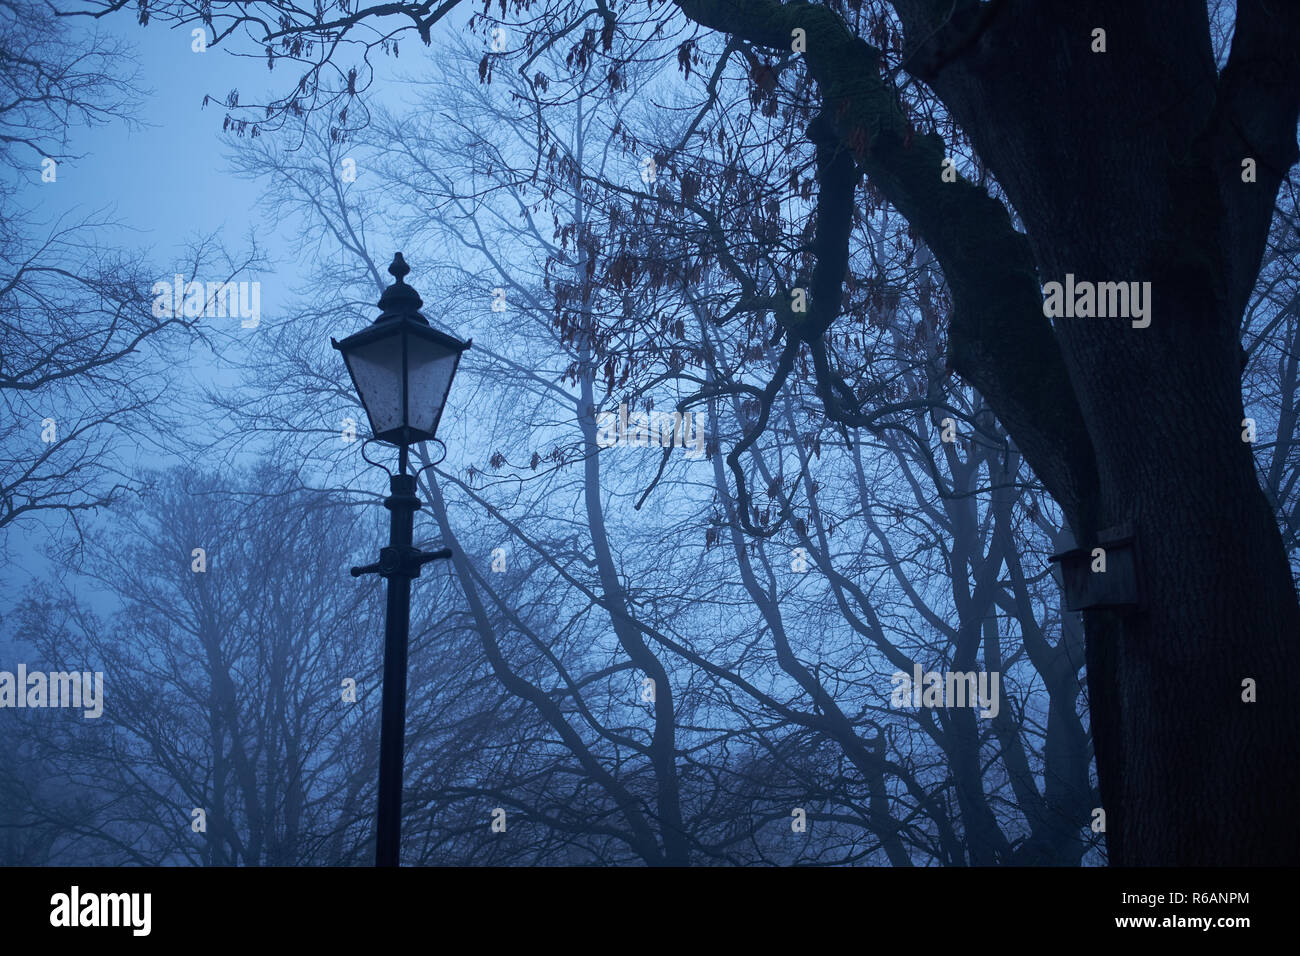 A traditional gas lamp stands surrounded by fog unlit against a back drop of trees in winter - Stock Image